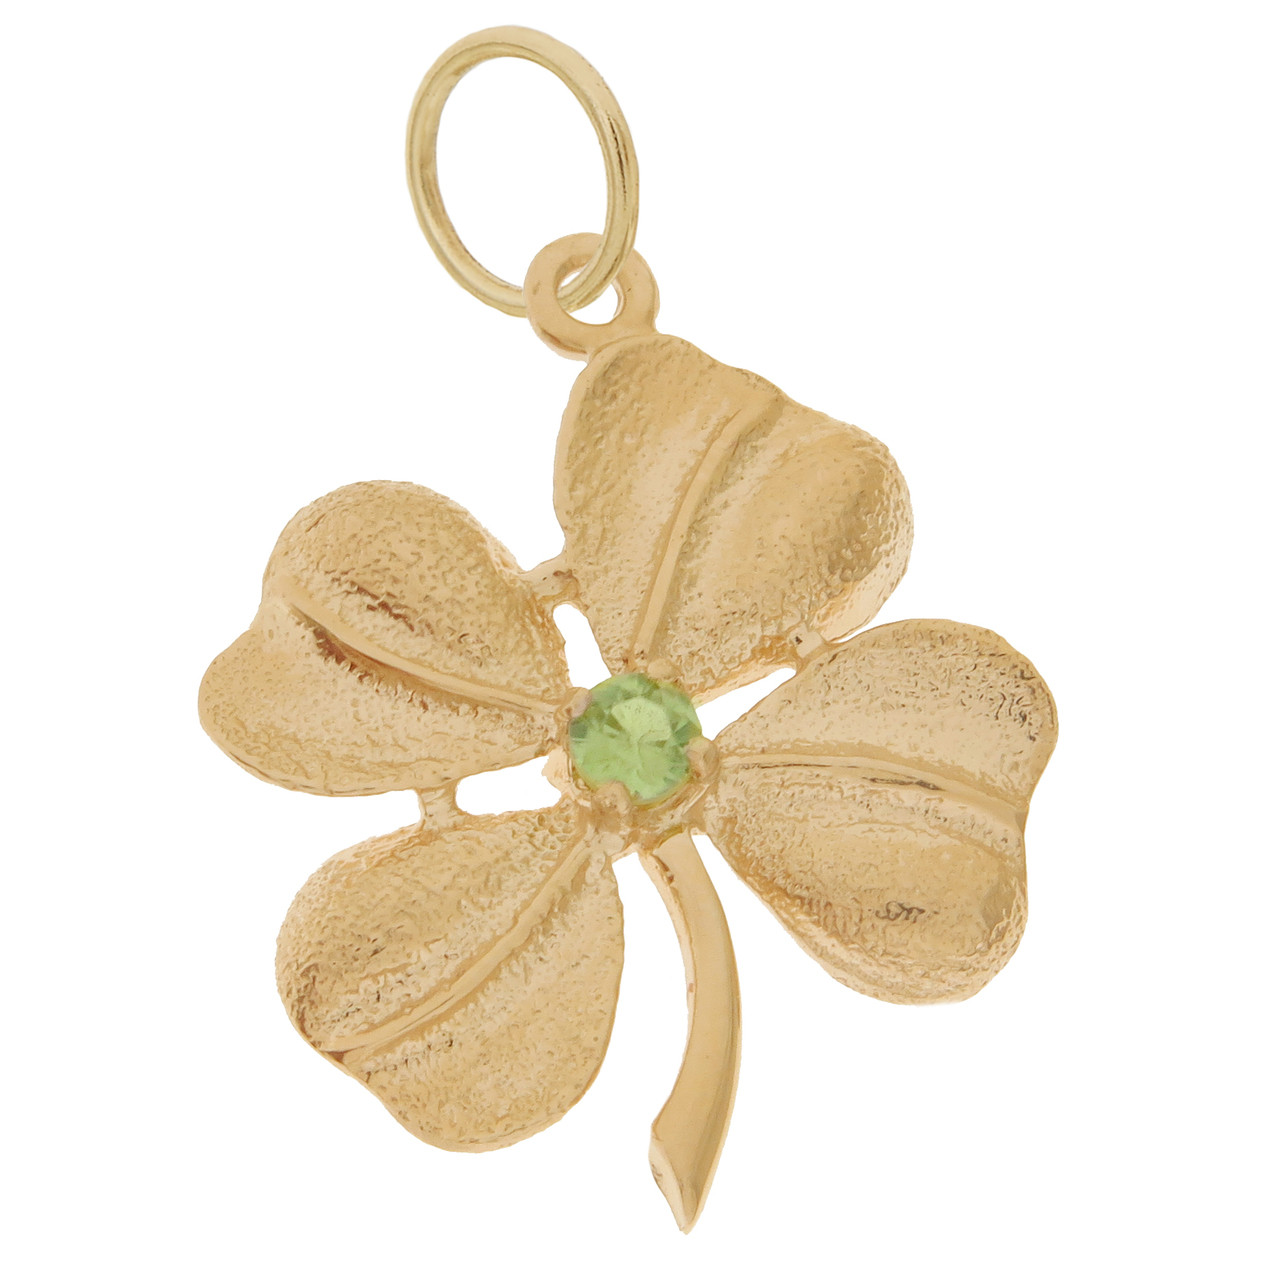 Four Leaf Clover Charm with Peridot